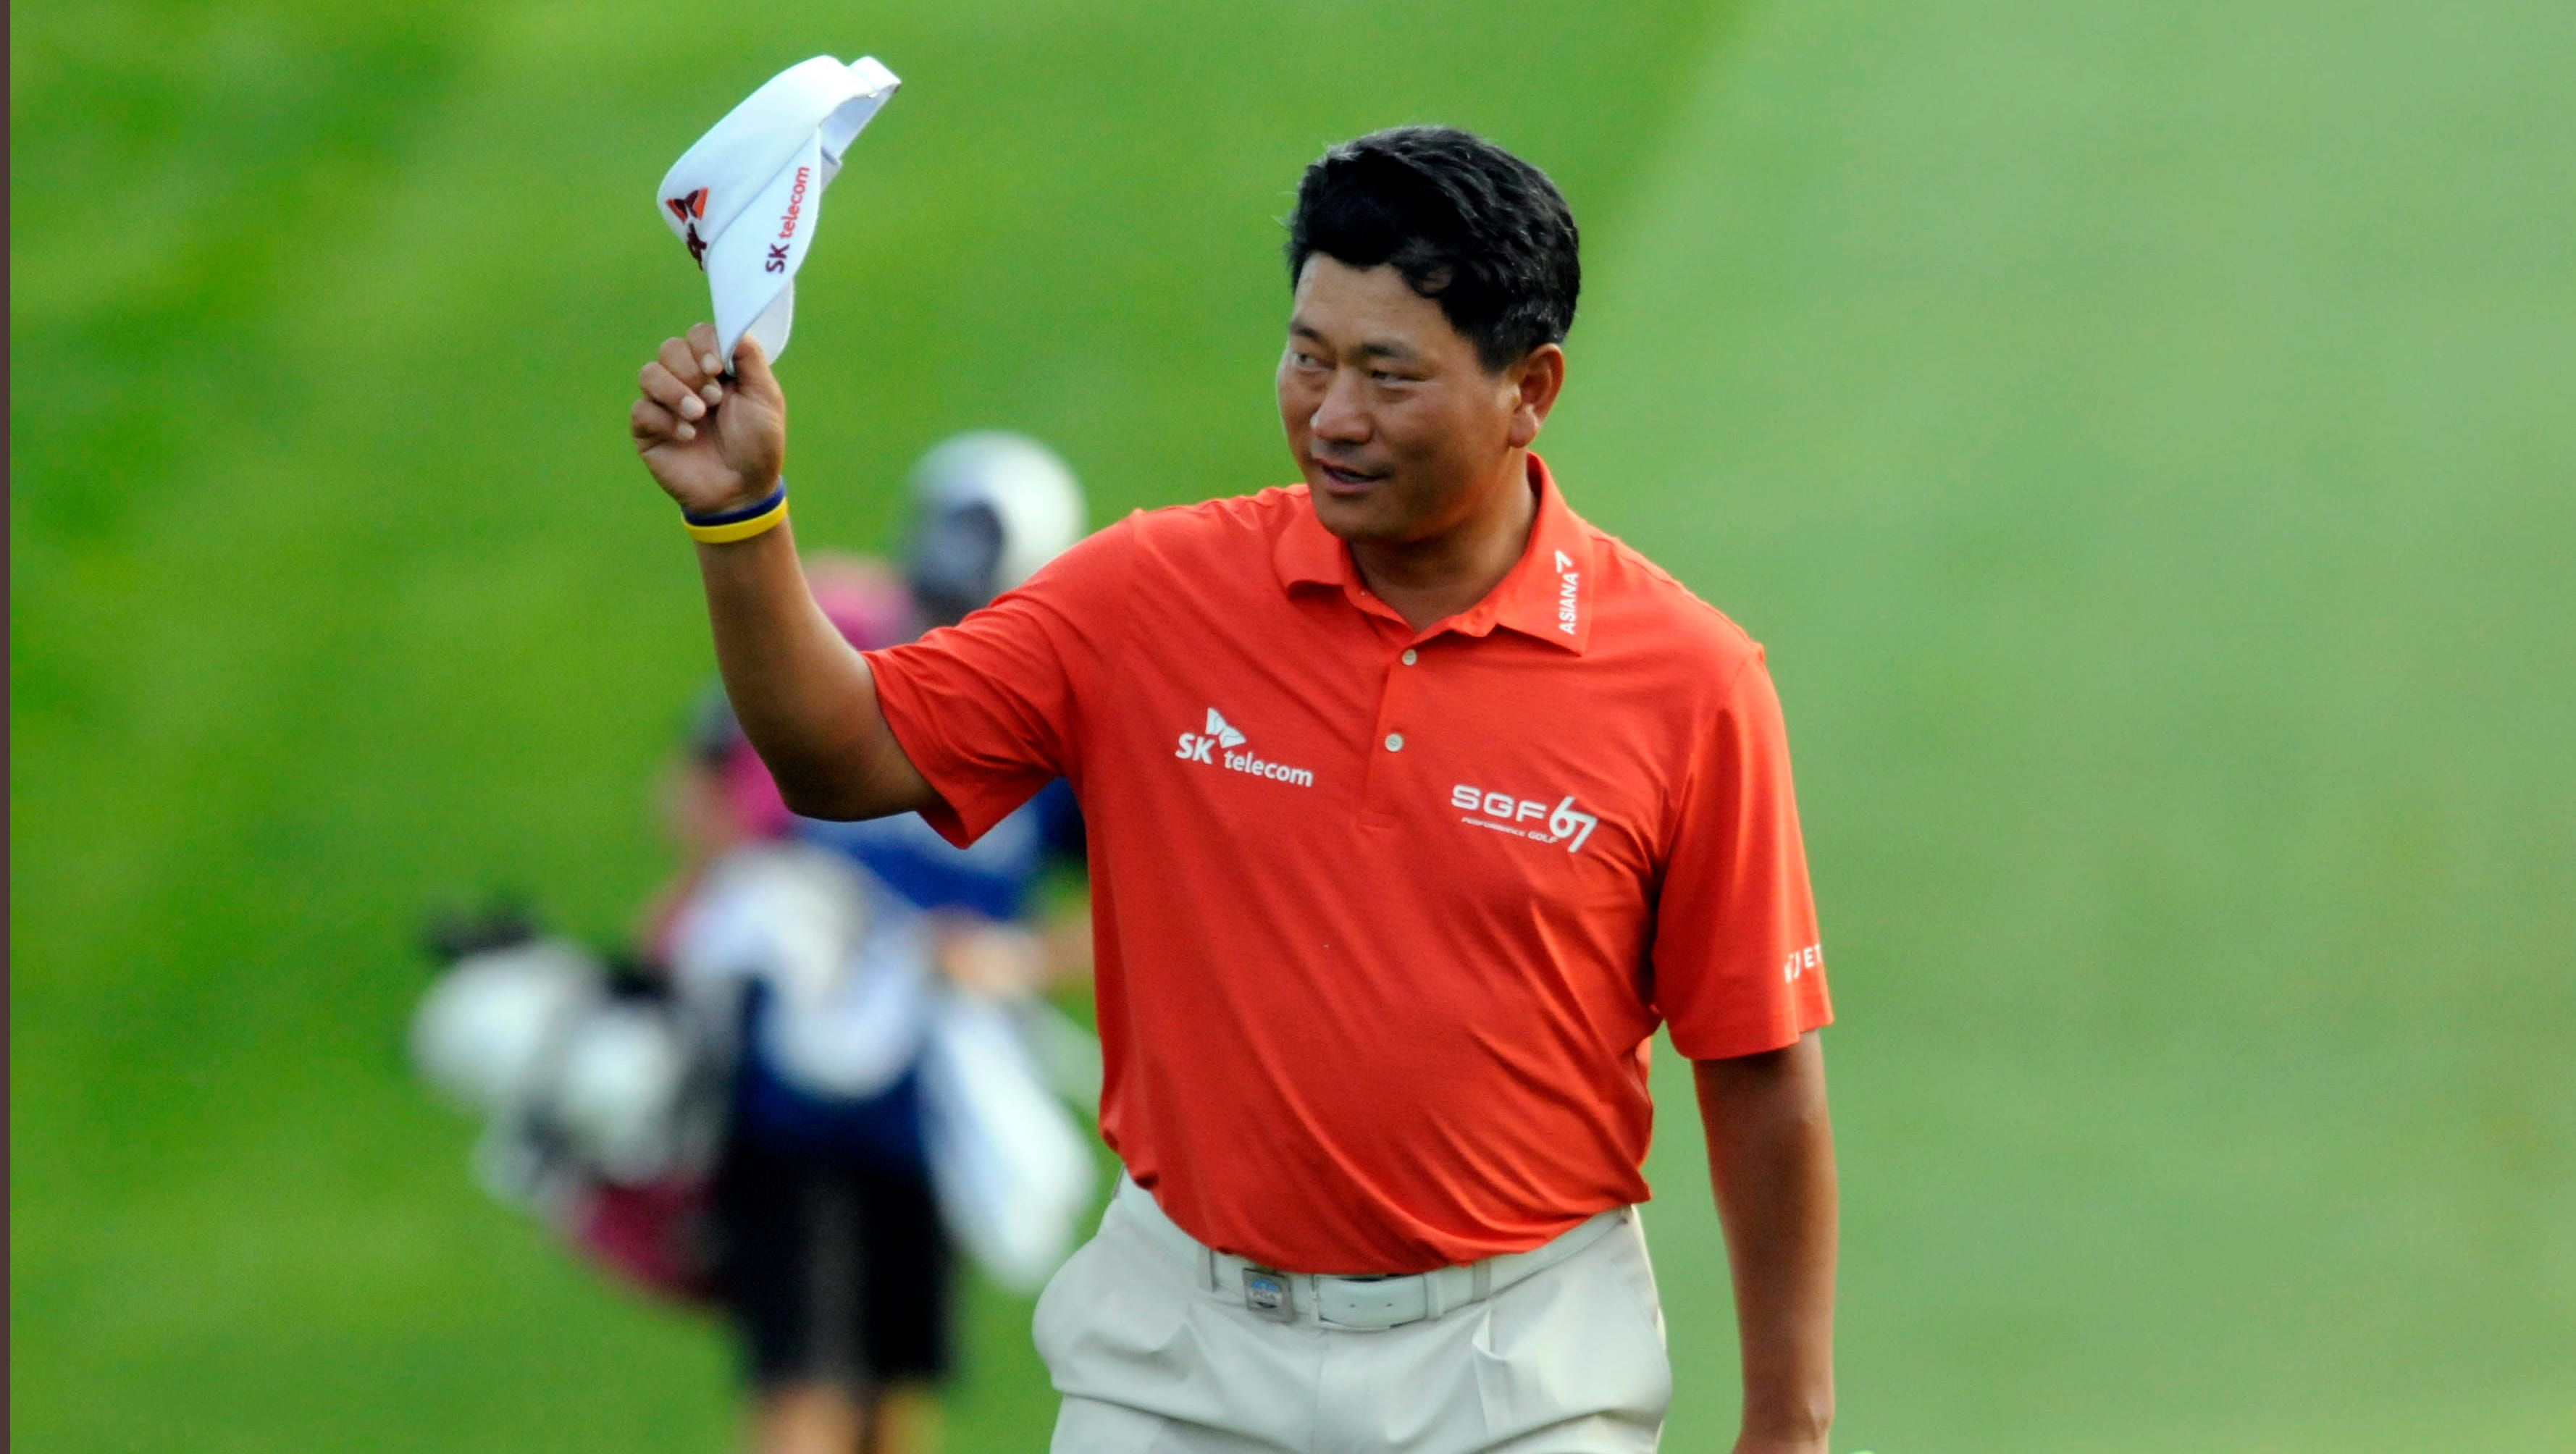 K.J. Choi tips his cap as he walks to the green on the 18th hole.